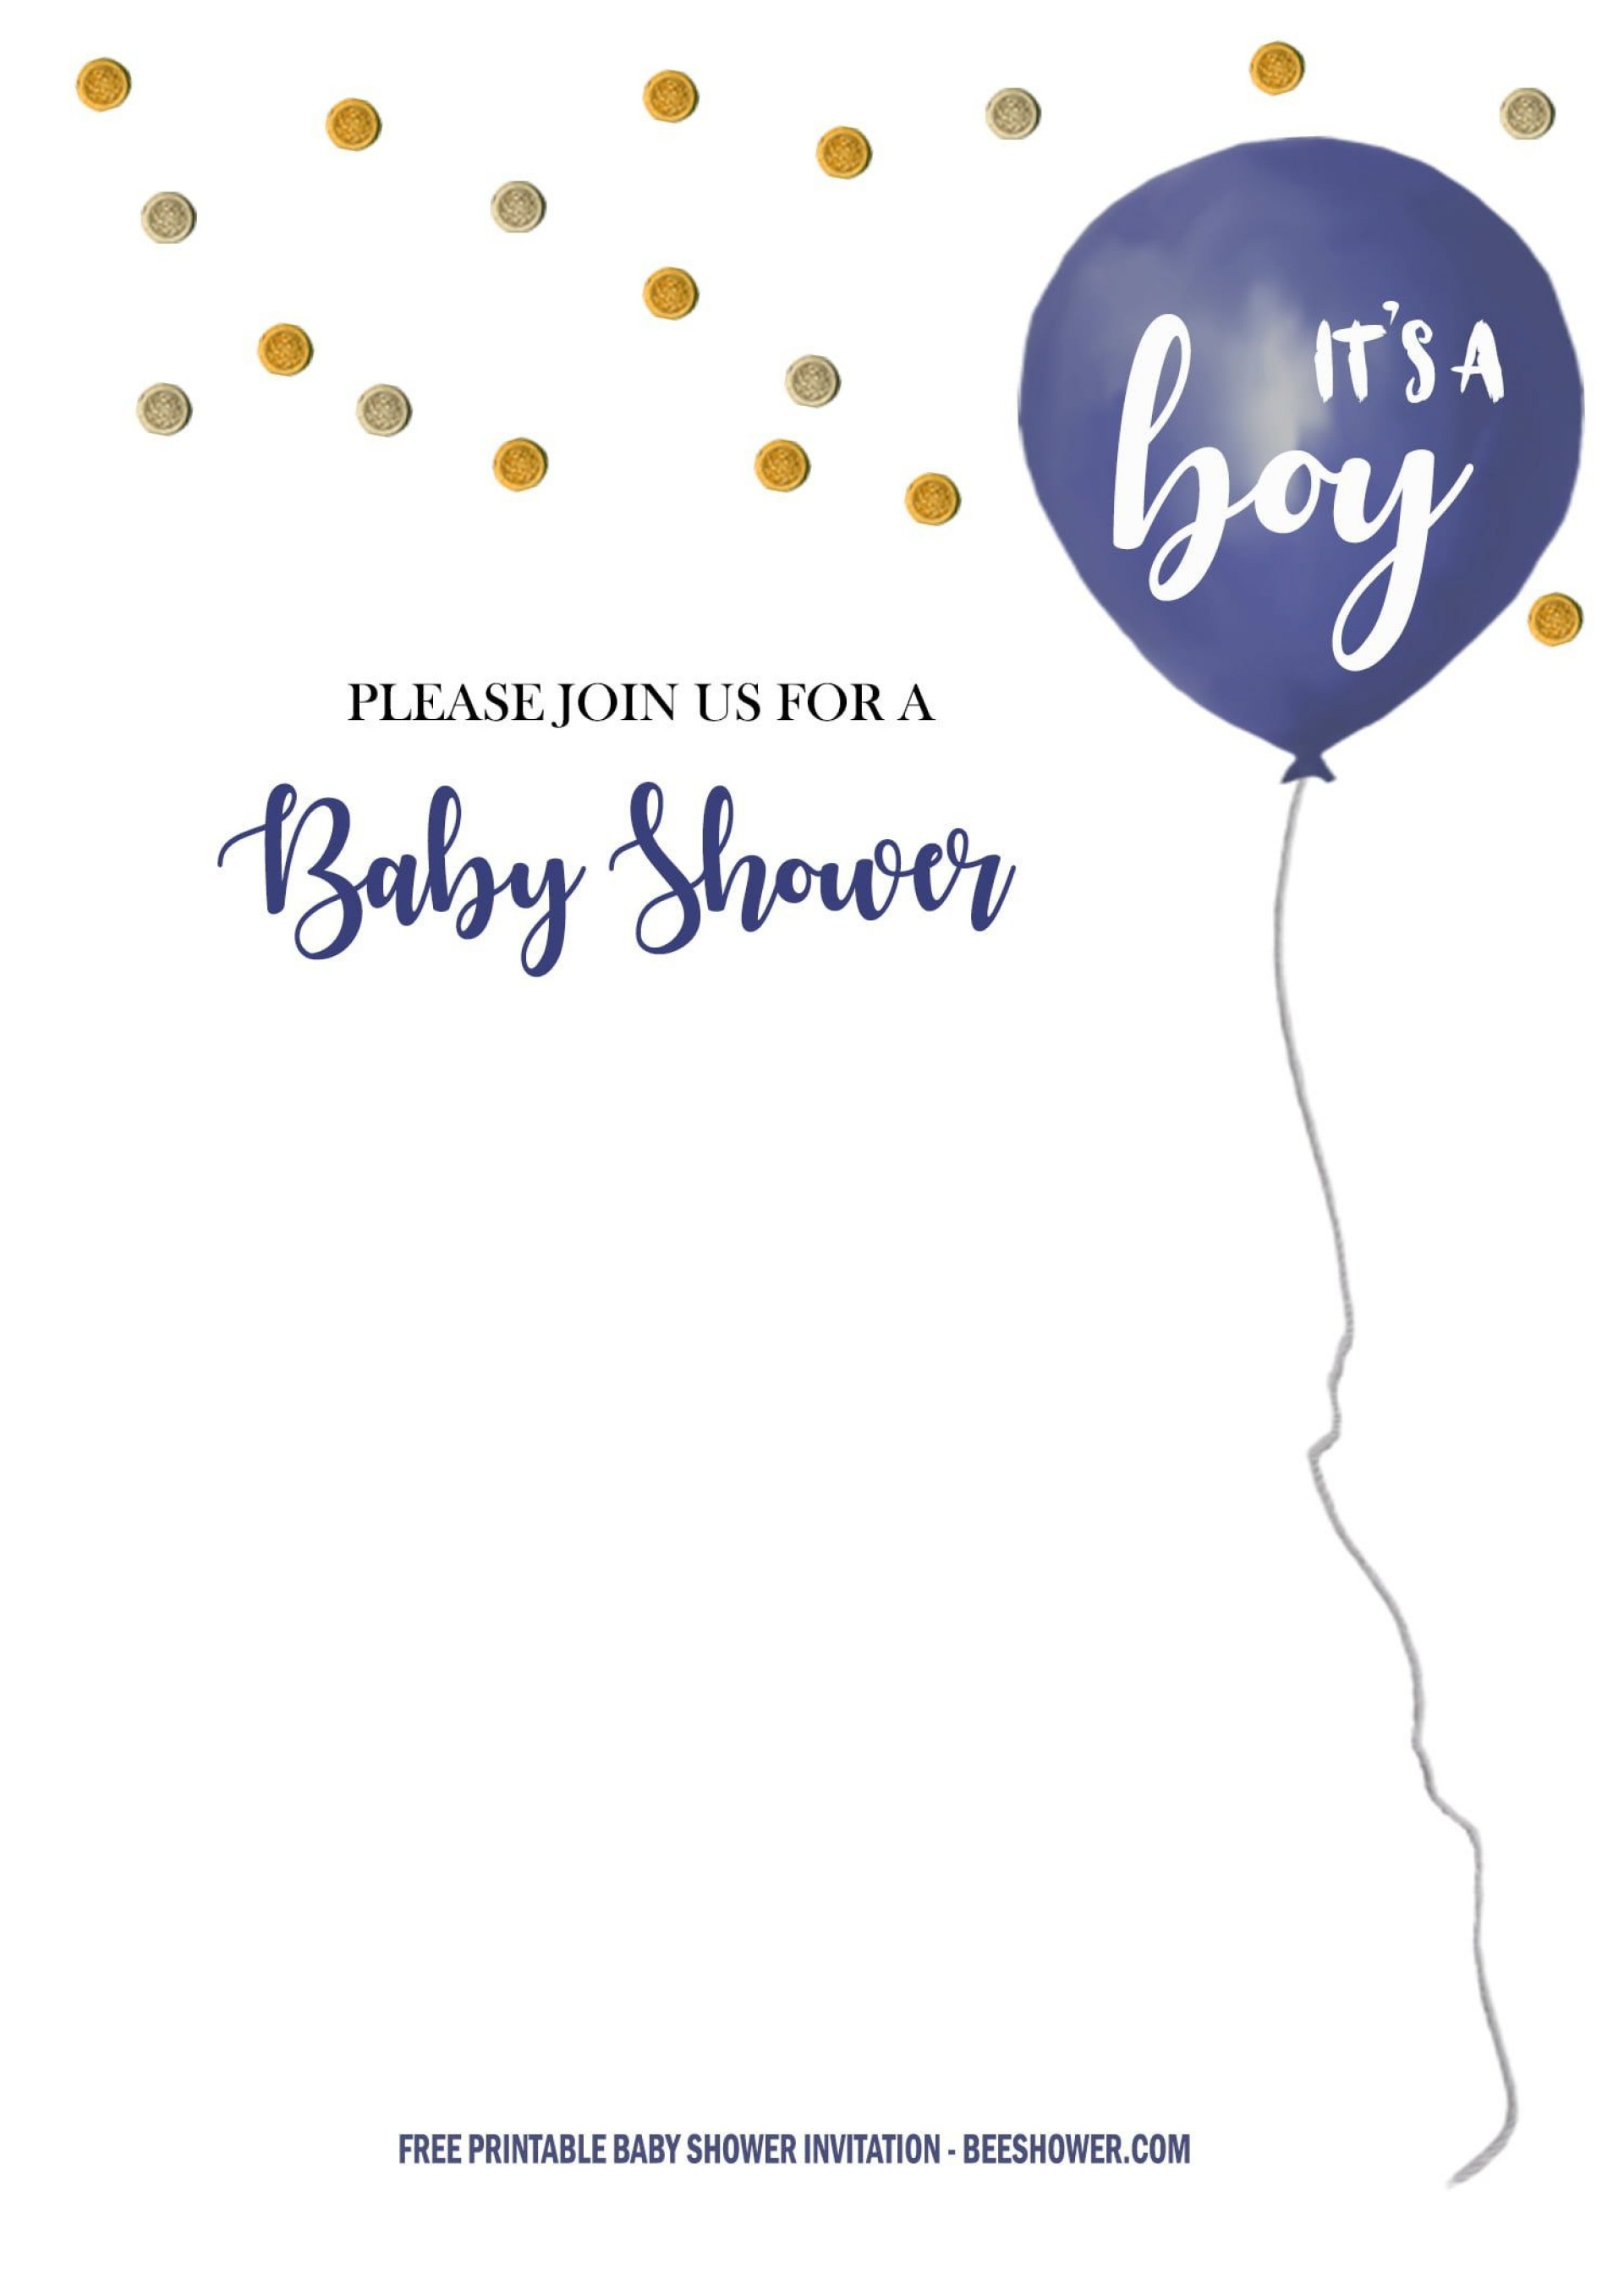 010 Staggering Free Baby Shower Invitation Template For Boy High Def 1920